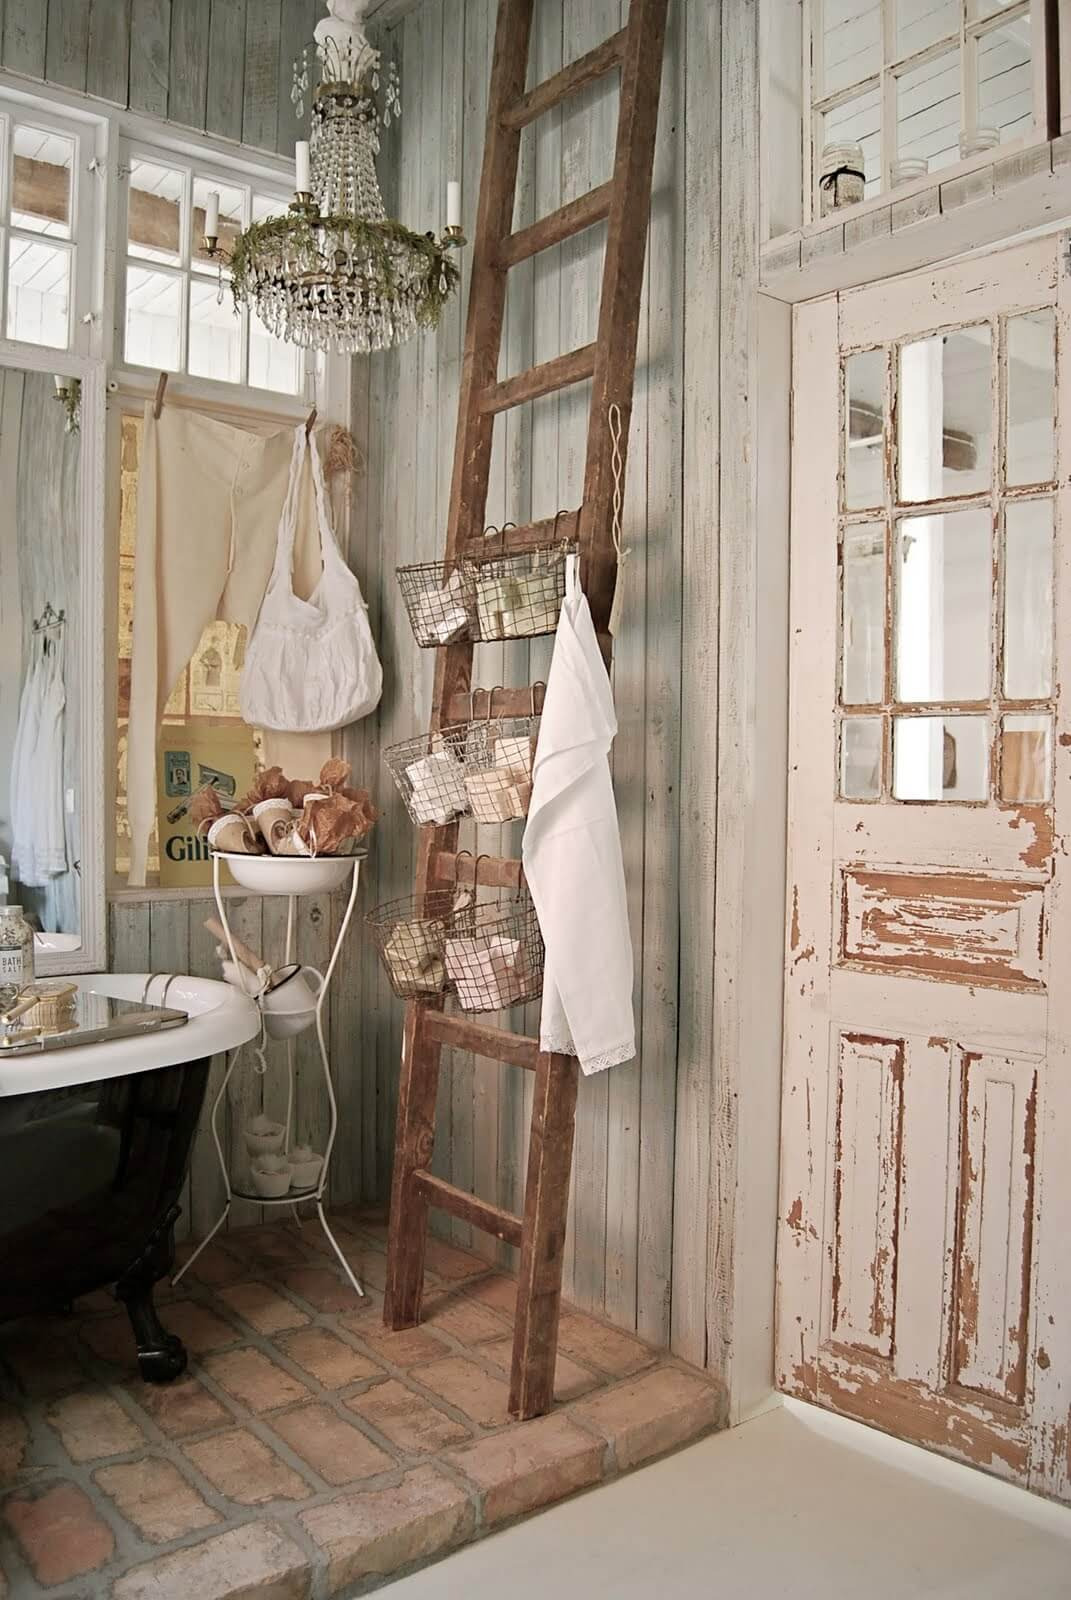 shabby chic home bathroom decor white rug window curtains accessories dublin wall tall cabinet simply adorable best ideas and designs for